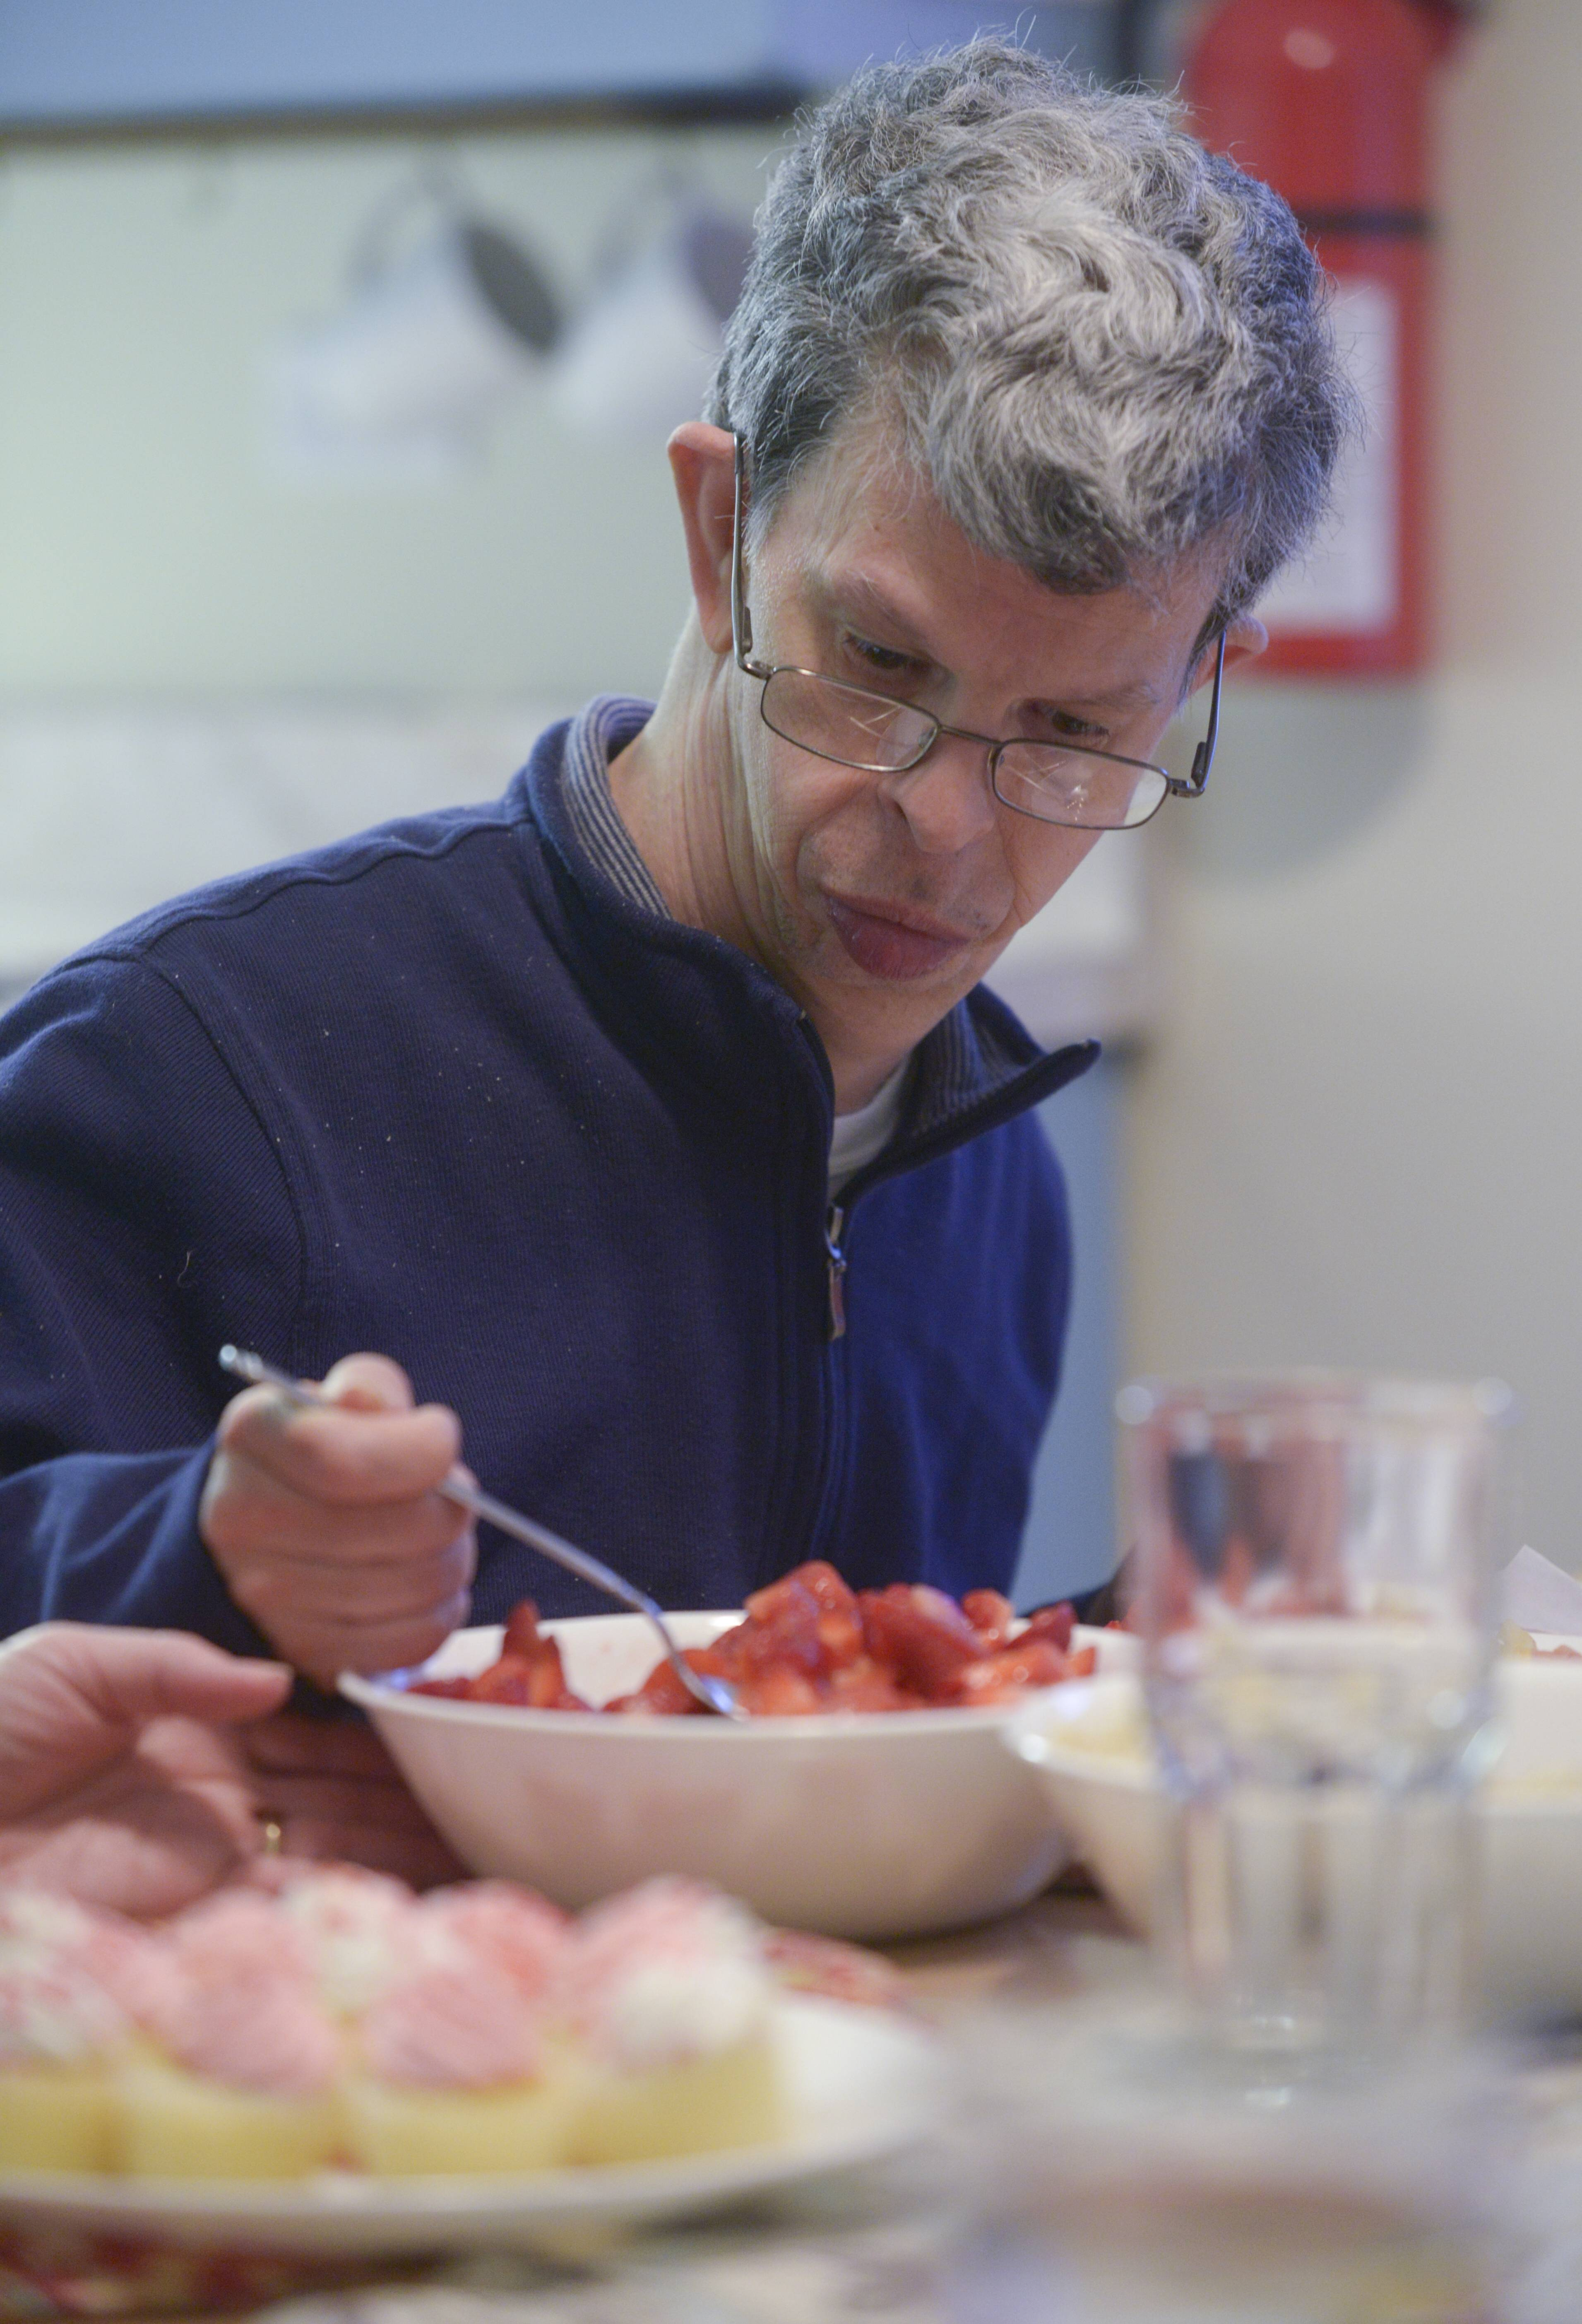 Gary Brunette, the designated cook for the week at Washington House, dishes up some strawberries as part of the meal he has prepared.